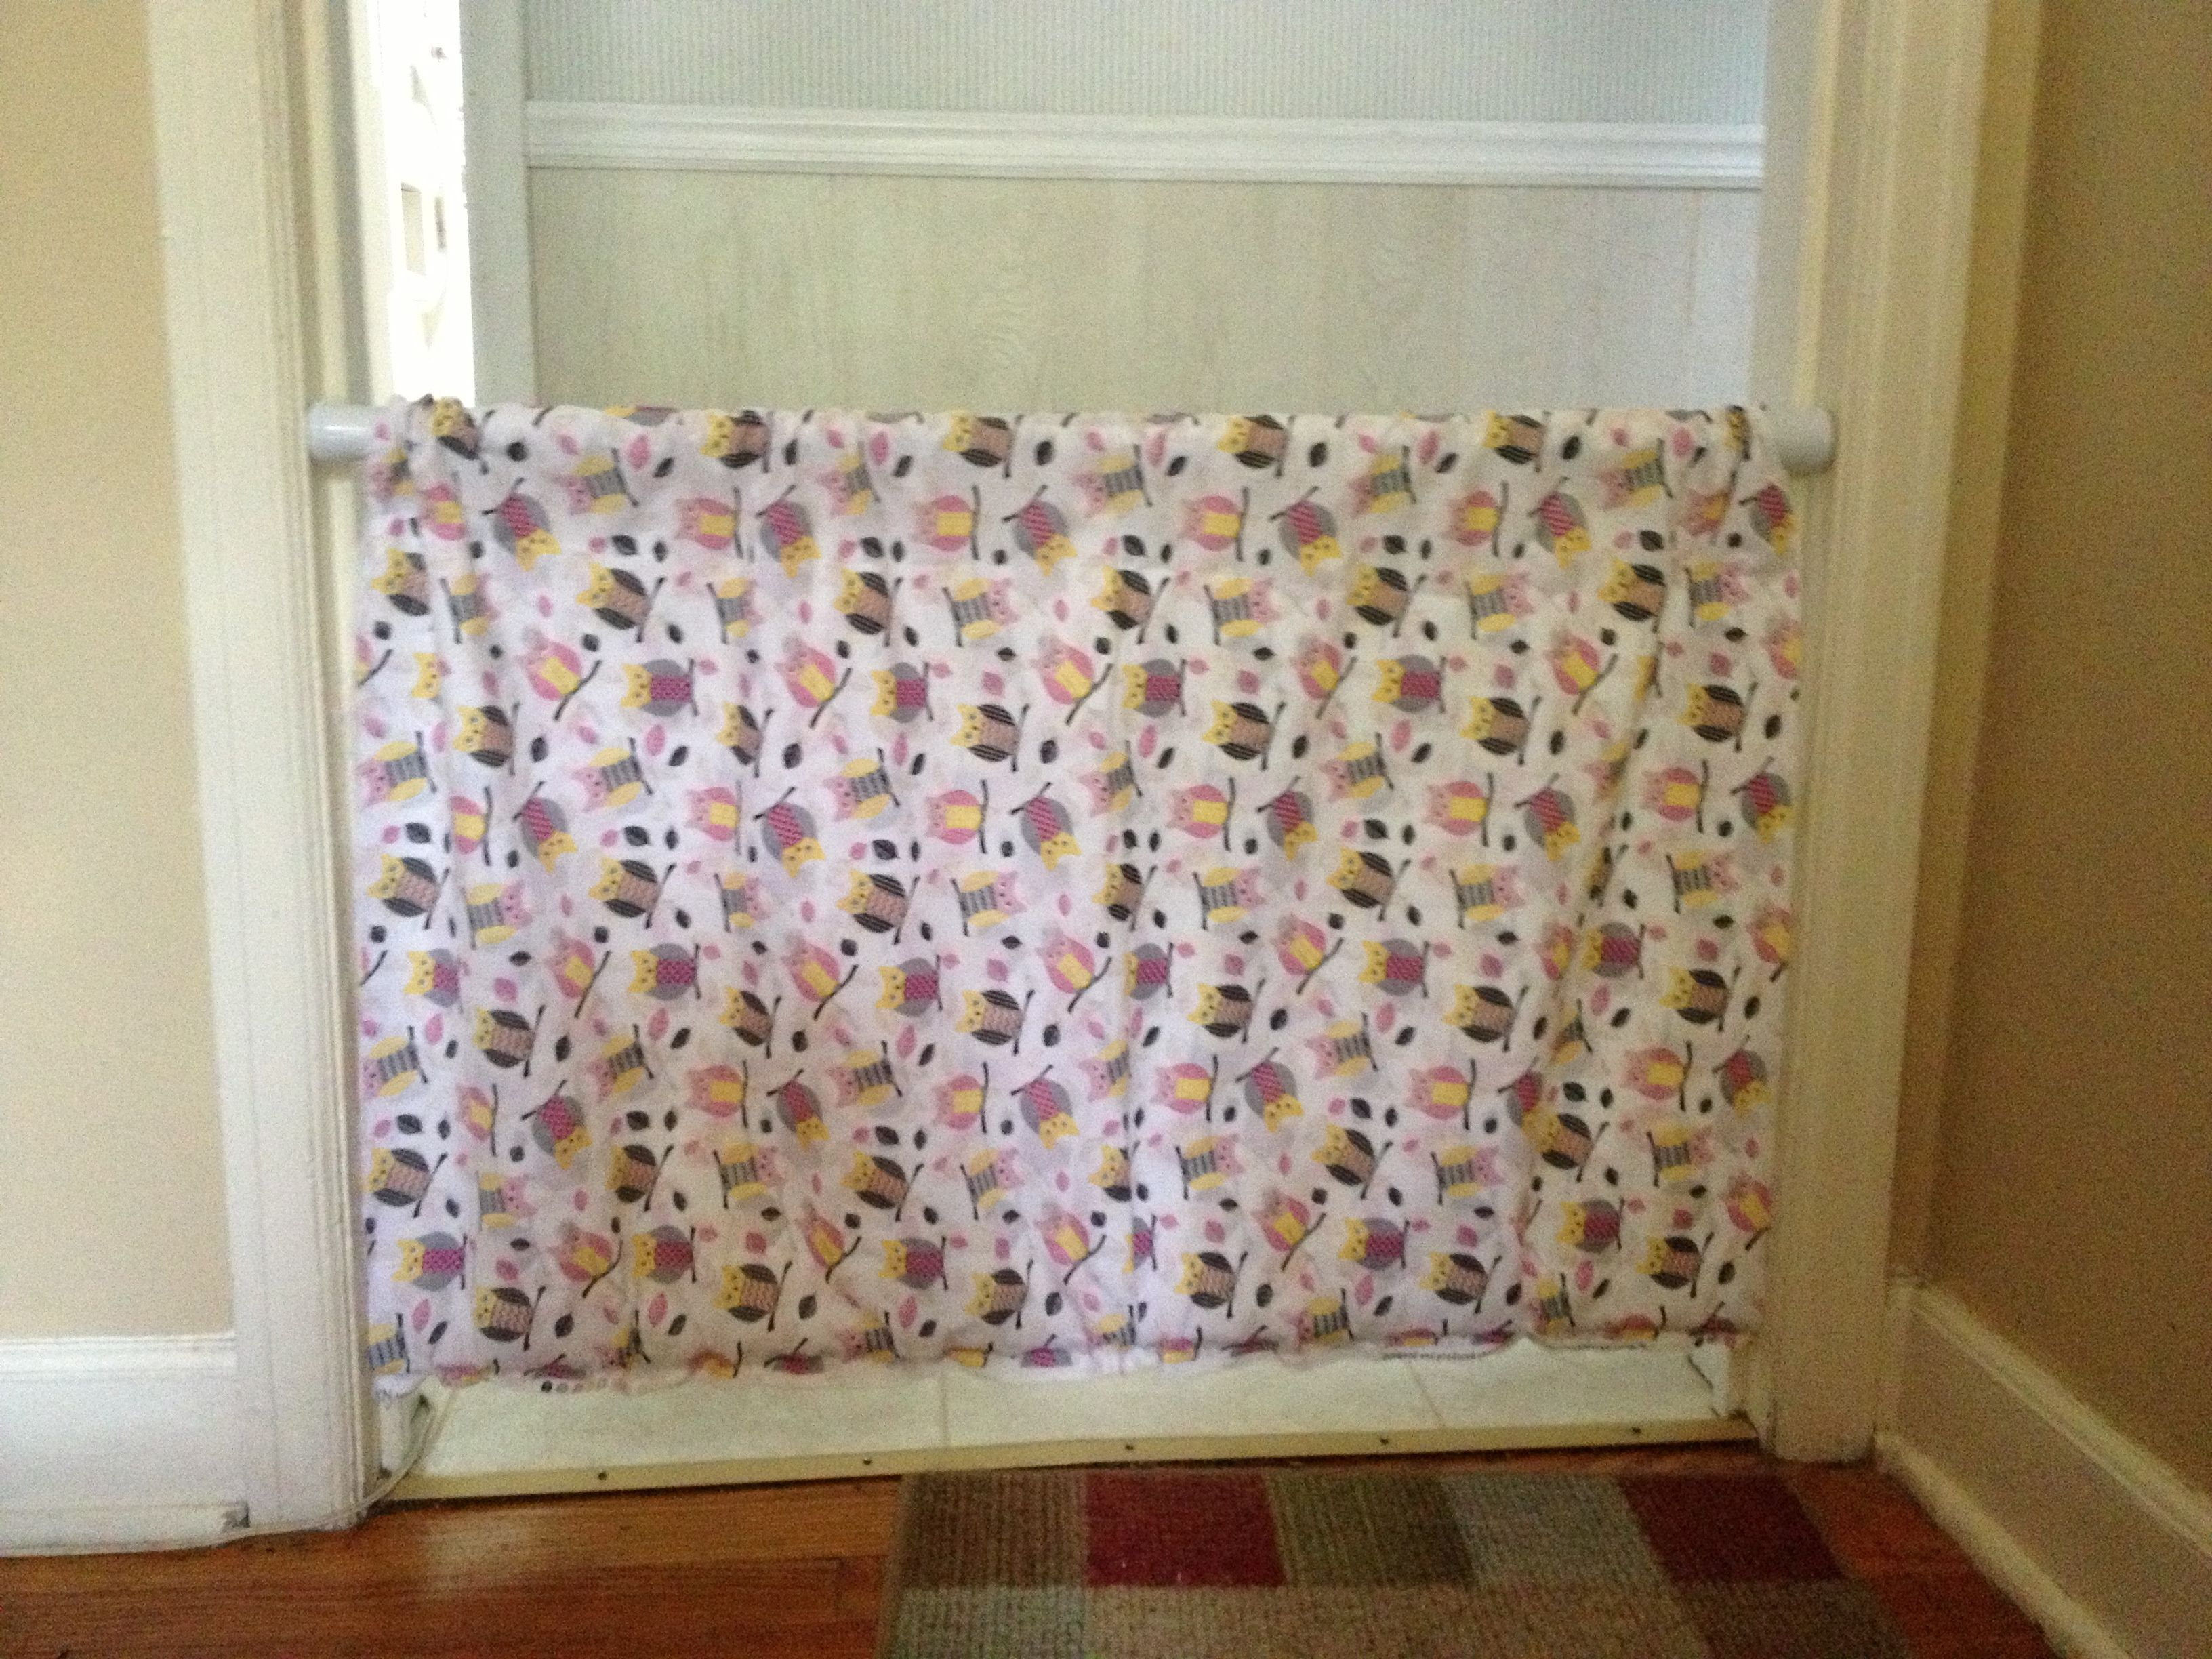 diy baby gate with tension shower curtain rods.   things i have